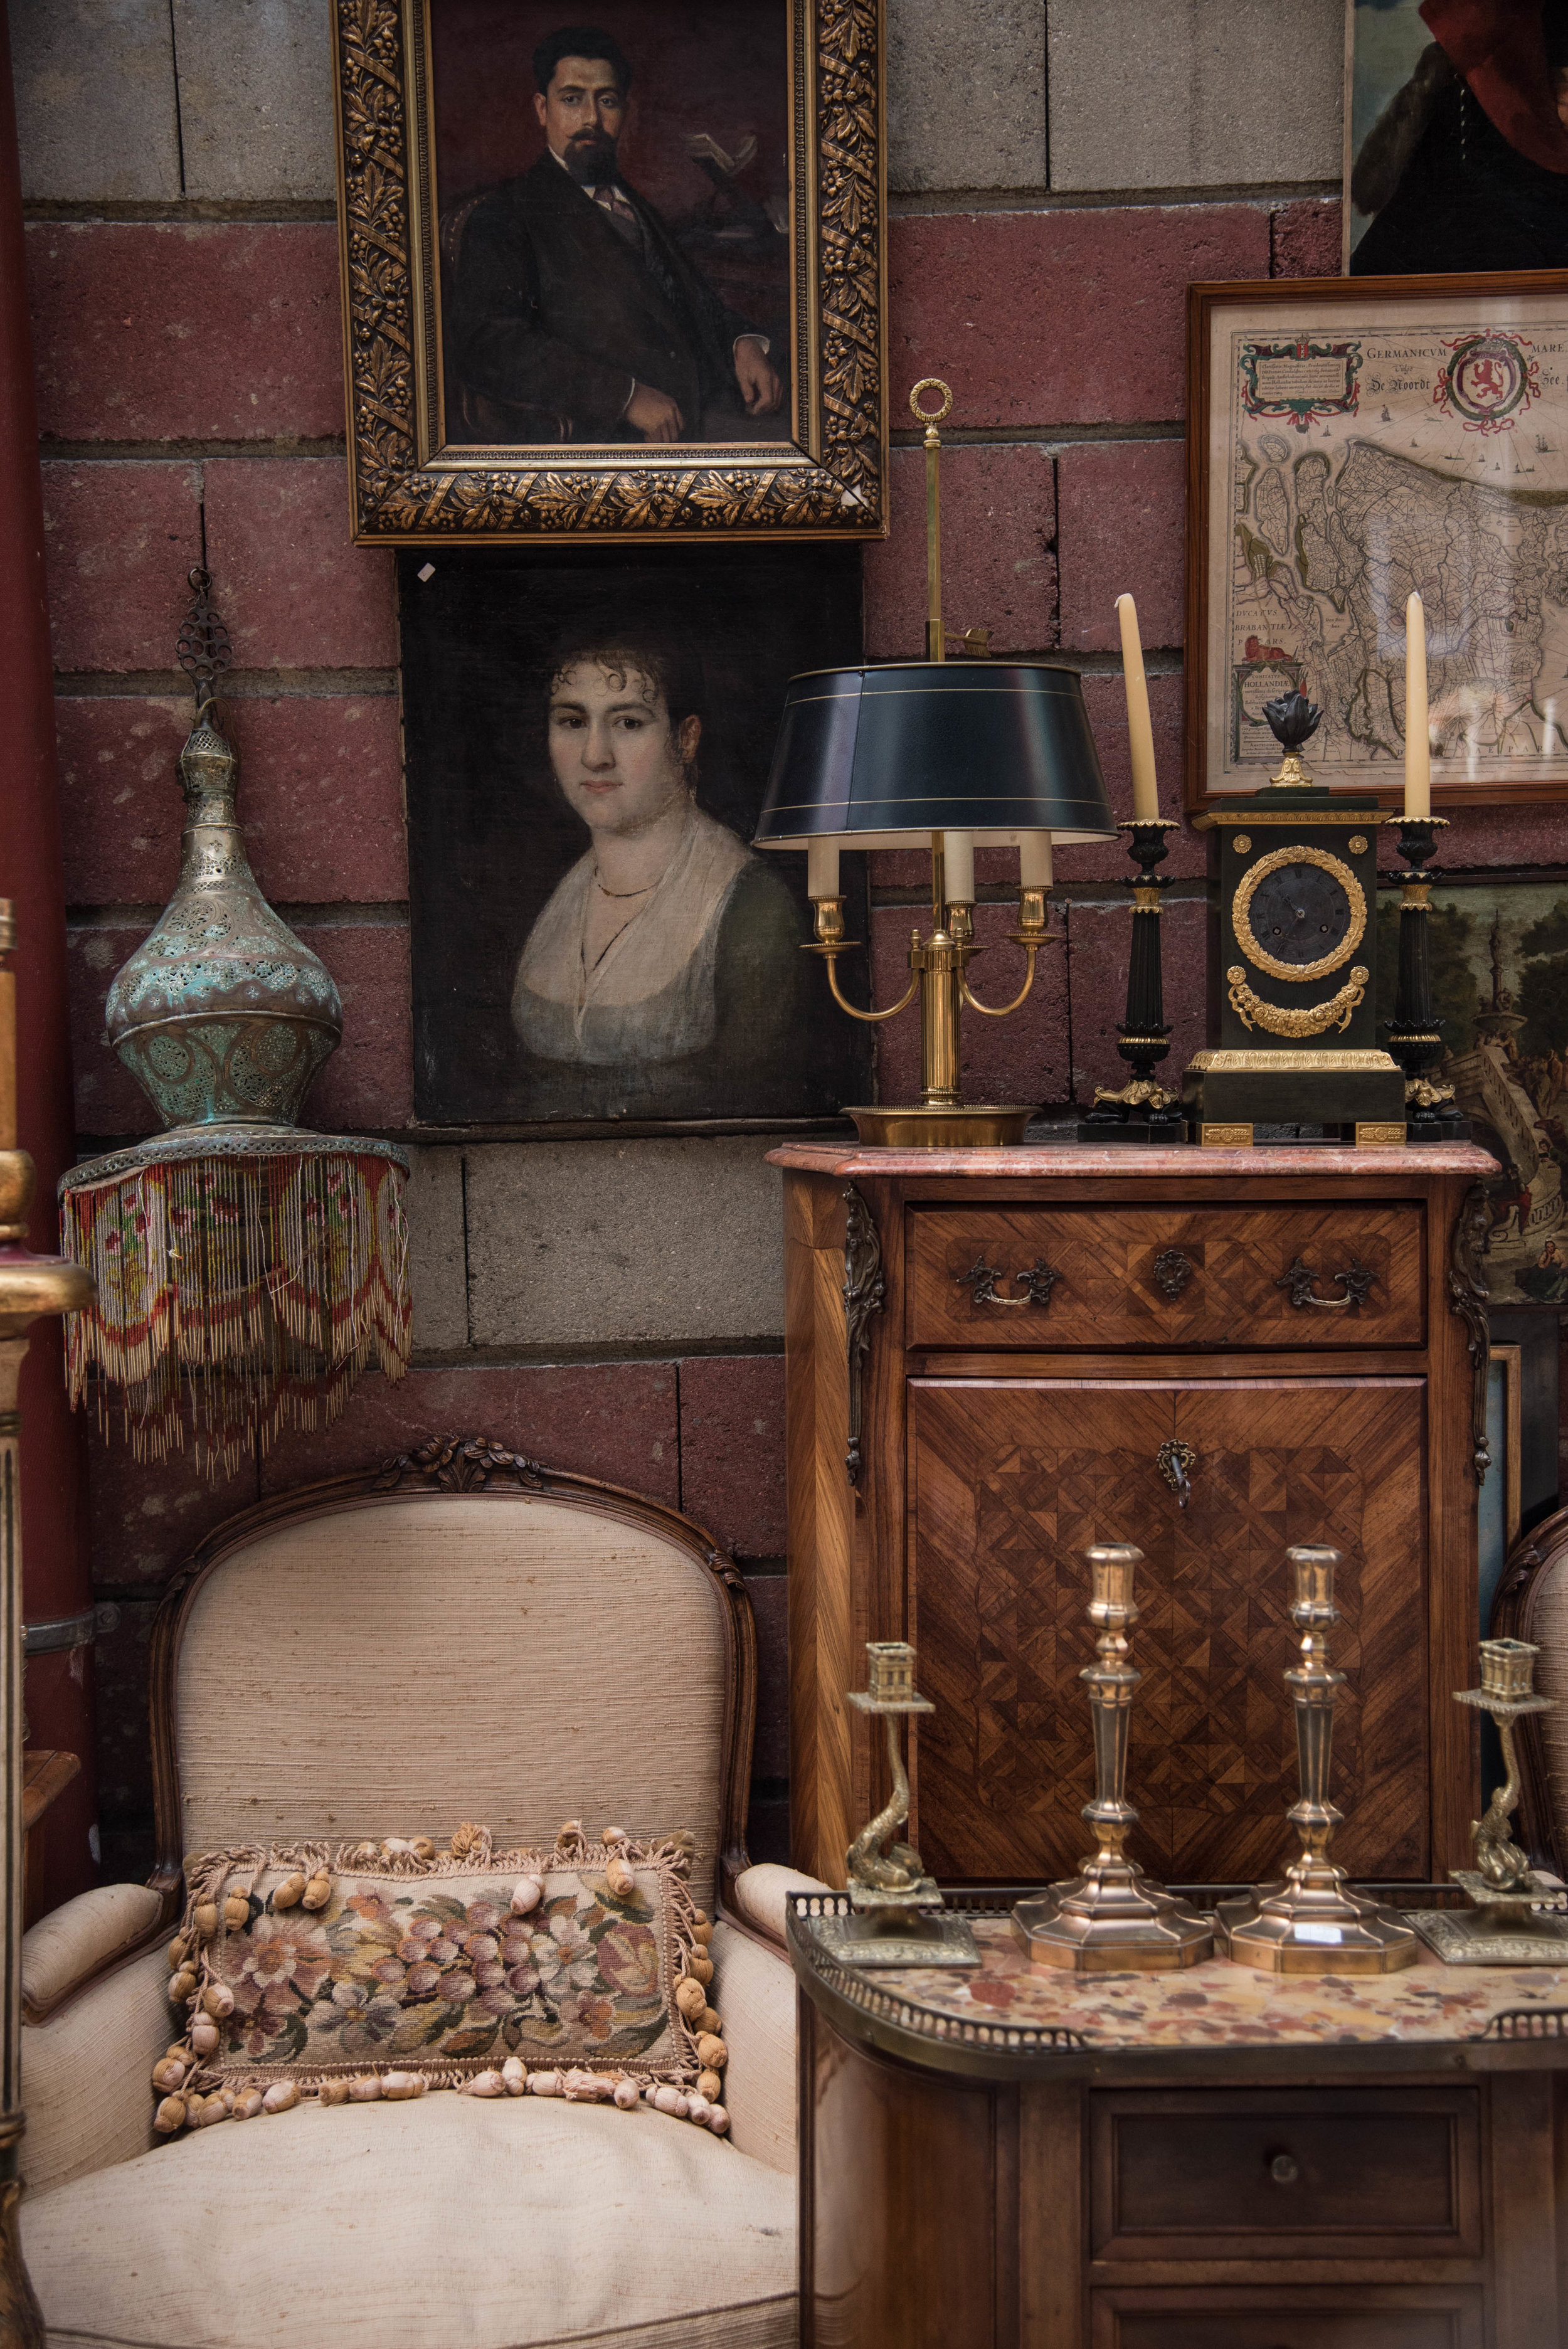 The Paris Flea Market - Tips on Shopping One of the Best Markets in the World with The Antiques Diva & Co.